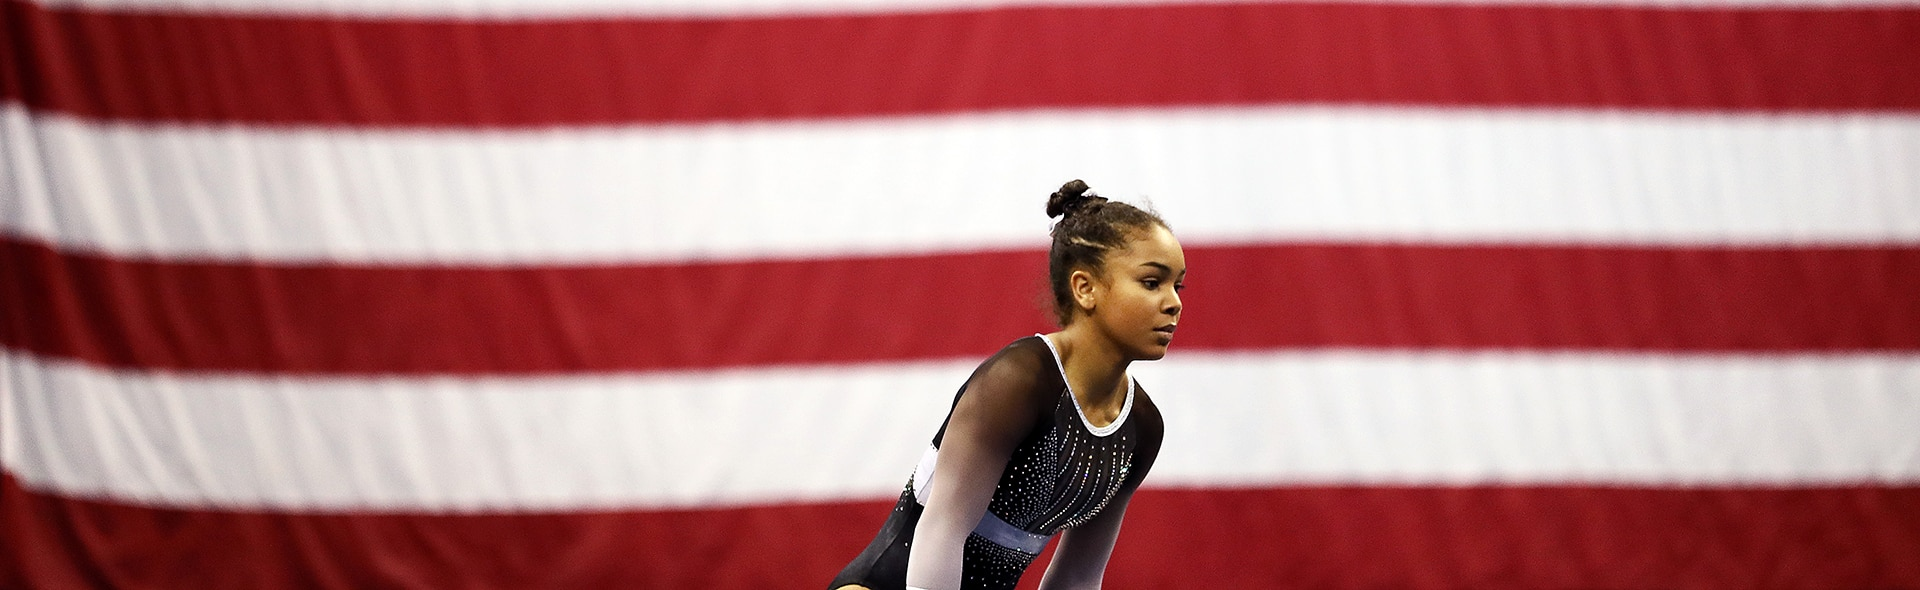 Konnor McClain competes on floor exercise during the Women's Junior competition of the 2019 U.S. Gymnastics Championships at the Sprint Center on August 11, 2019 in Kansas City, Missouri.